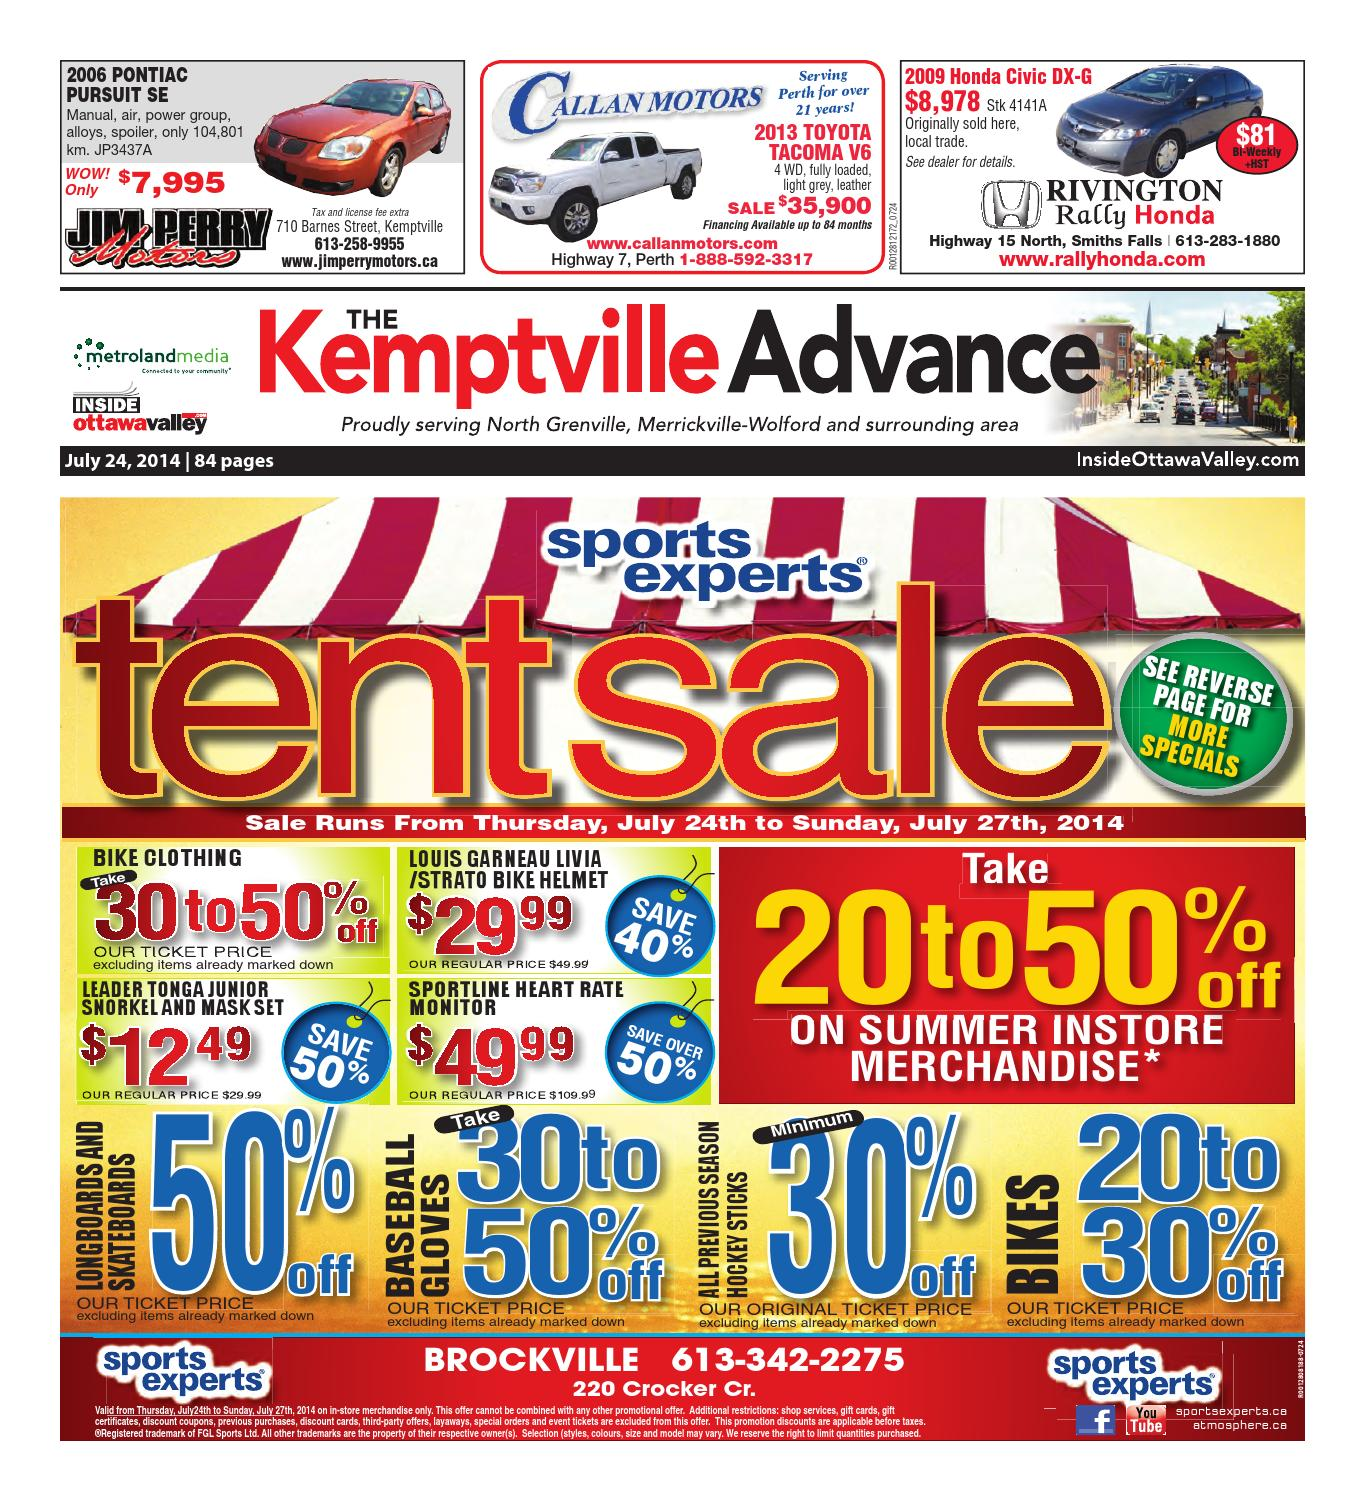 f8b03a0f5e28f0 Kemptville072414 by Metroland East - Kemptville Advance - issuu